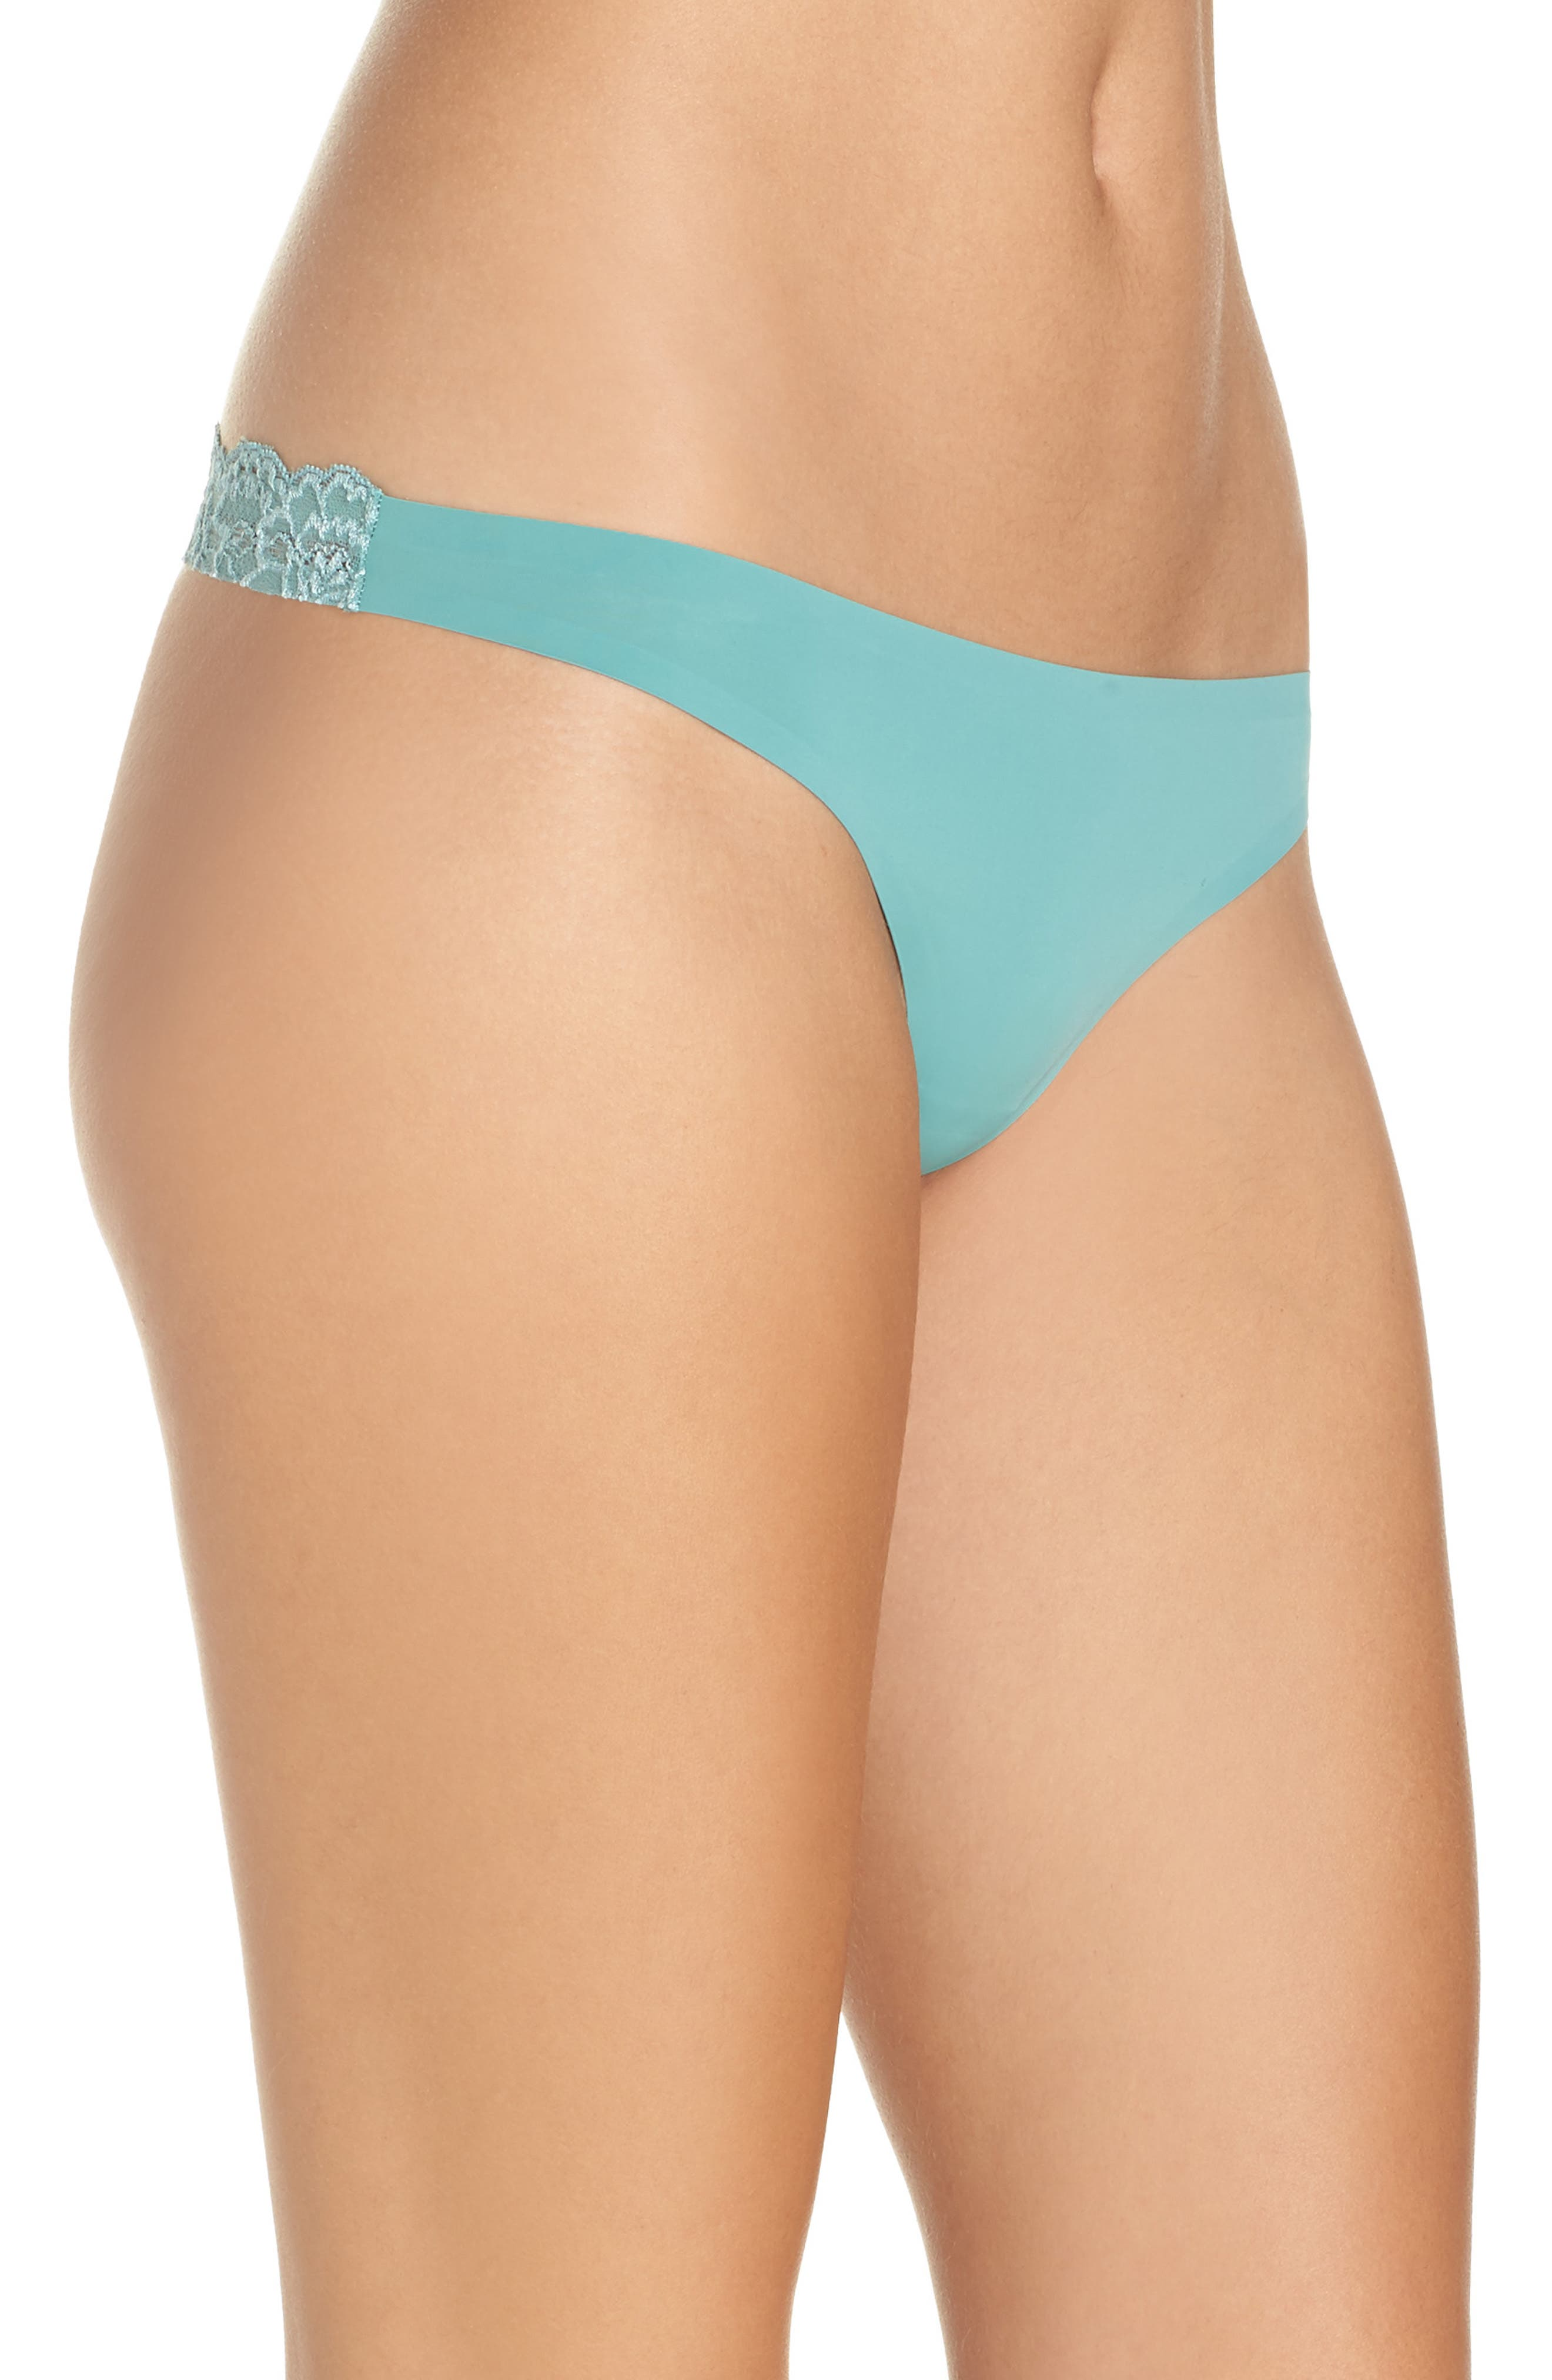 Intimately FP Smooth Thong,                             Alternate thumbnail 23, color,